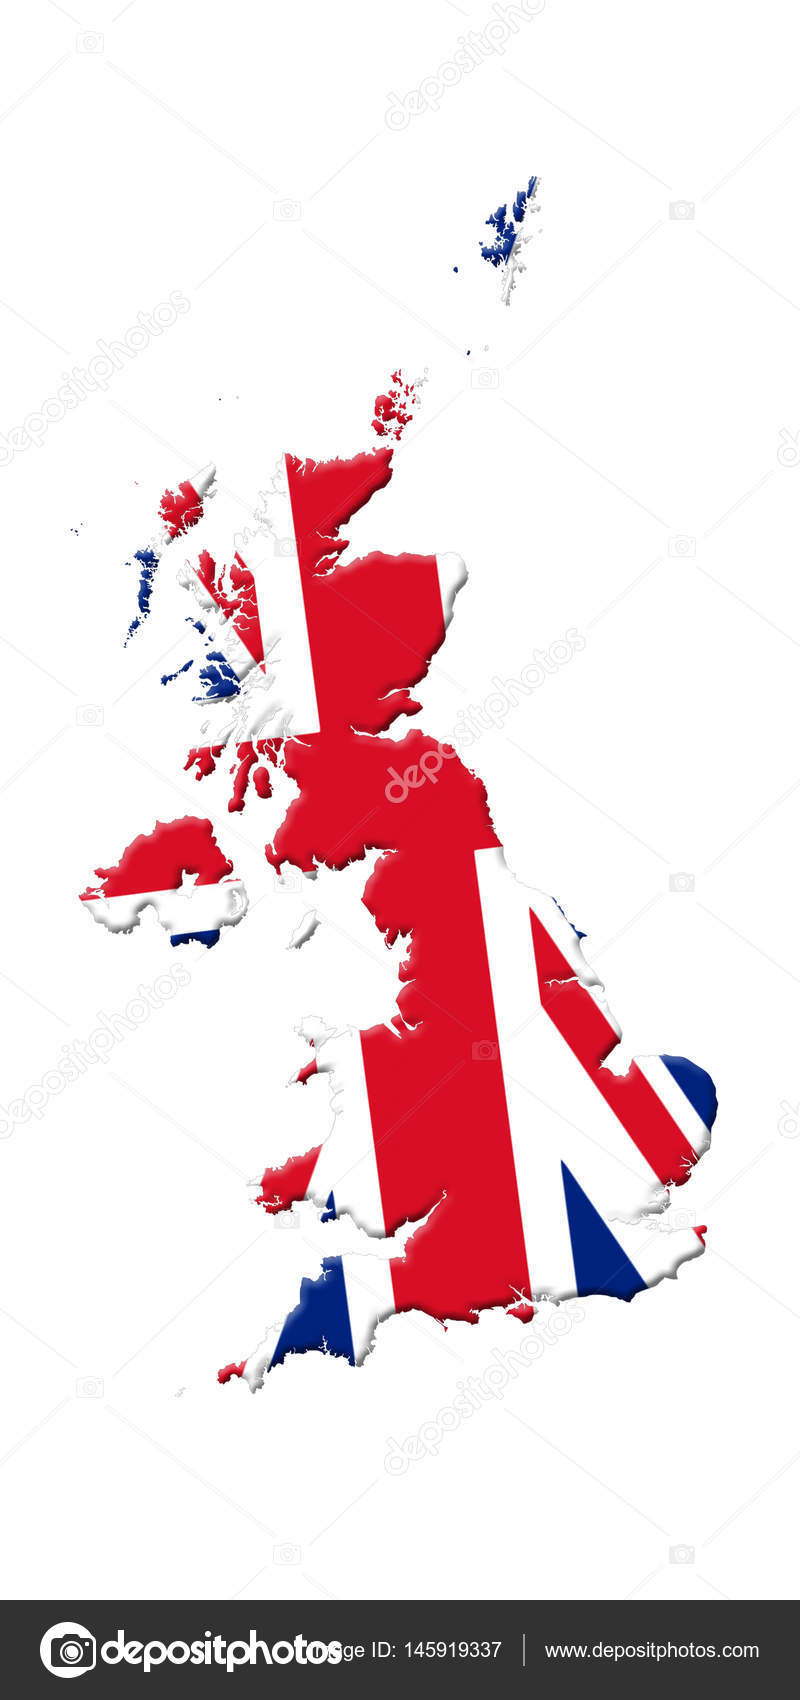 great britain s map with flag on it isolated on white background 3d